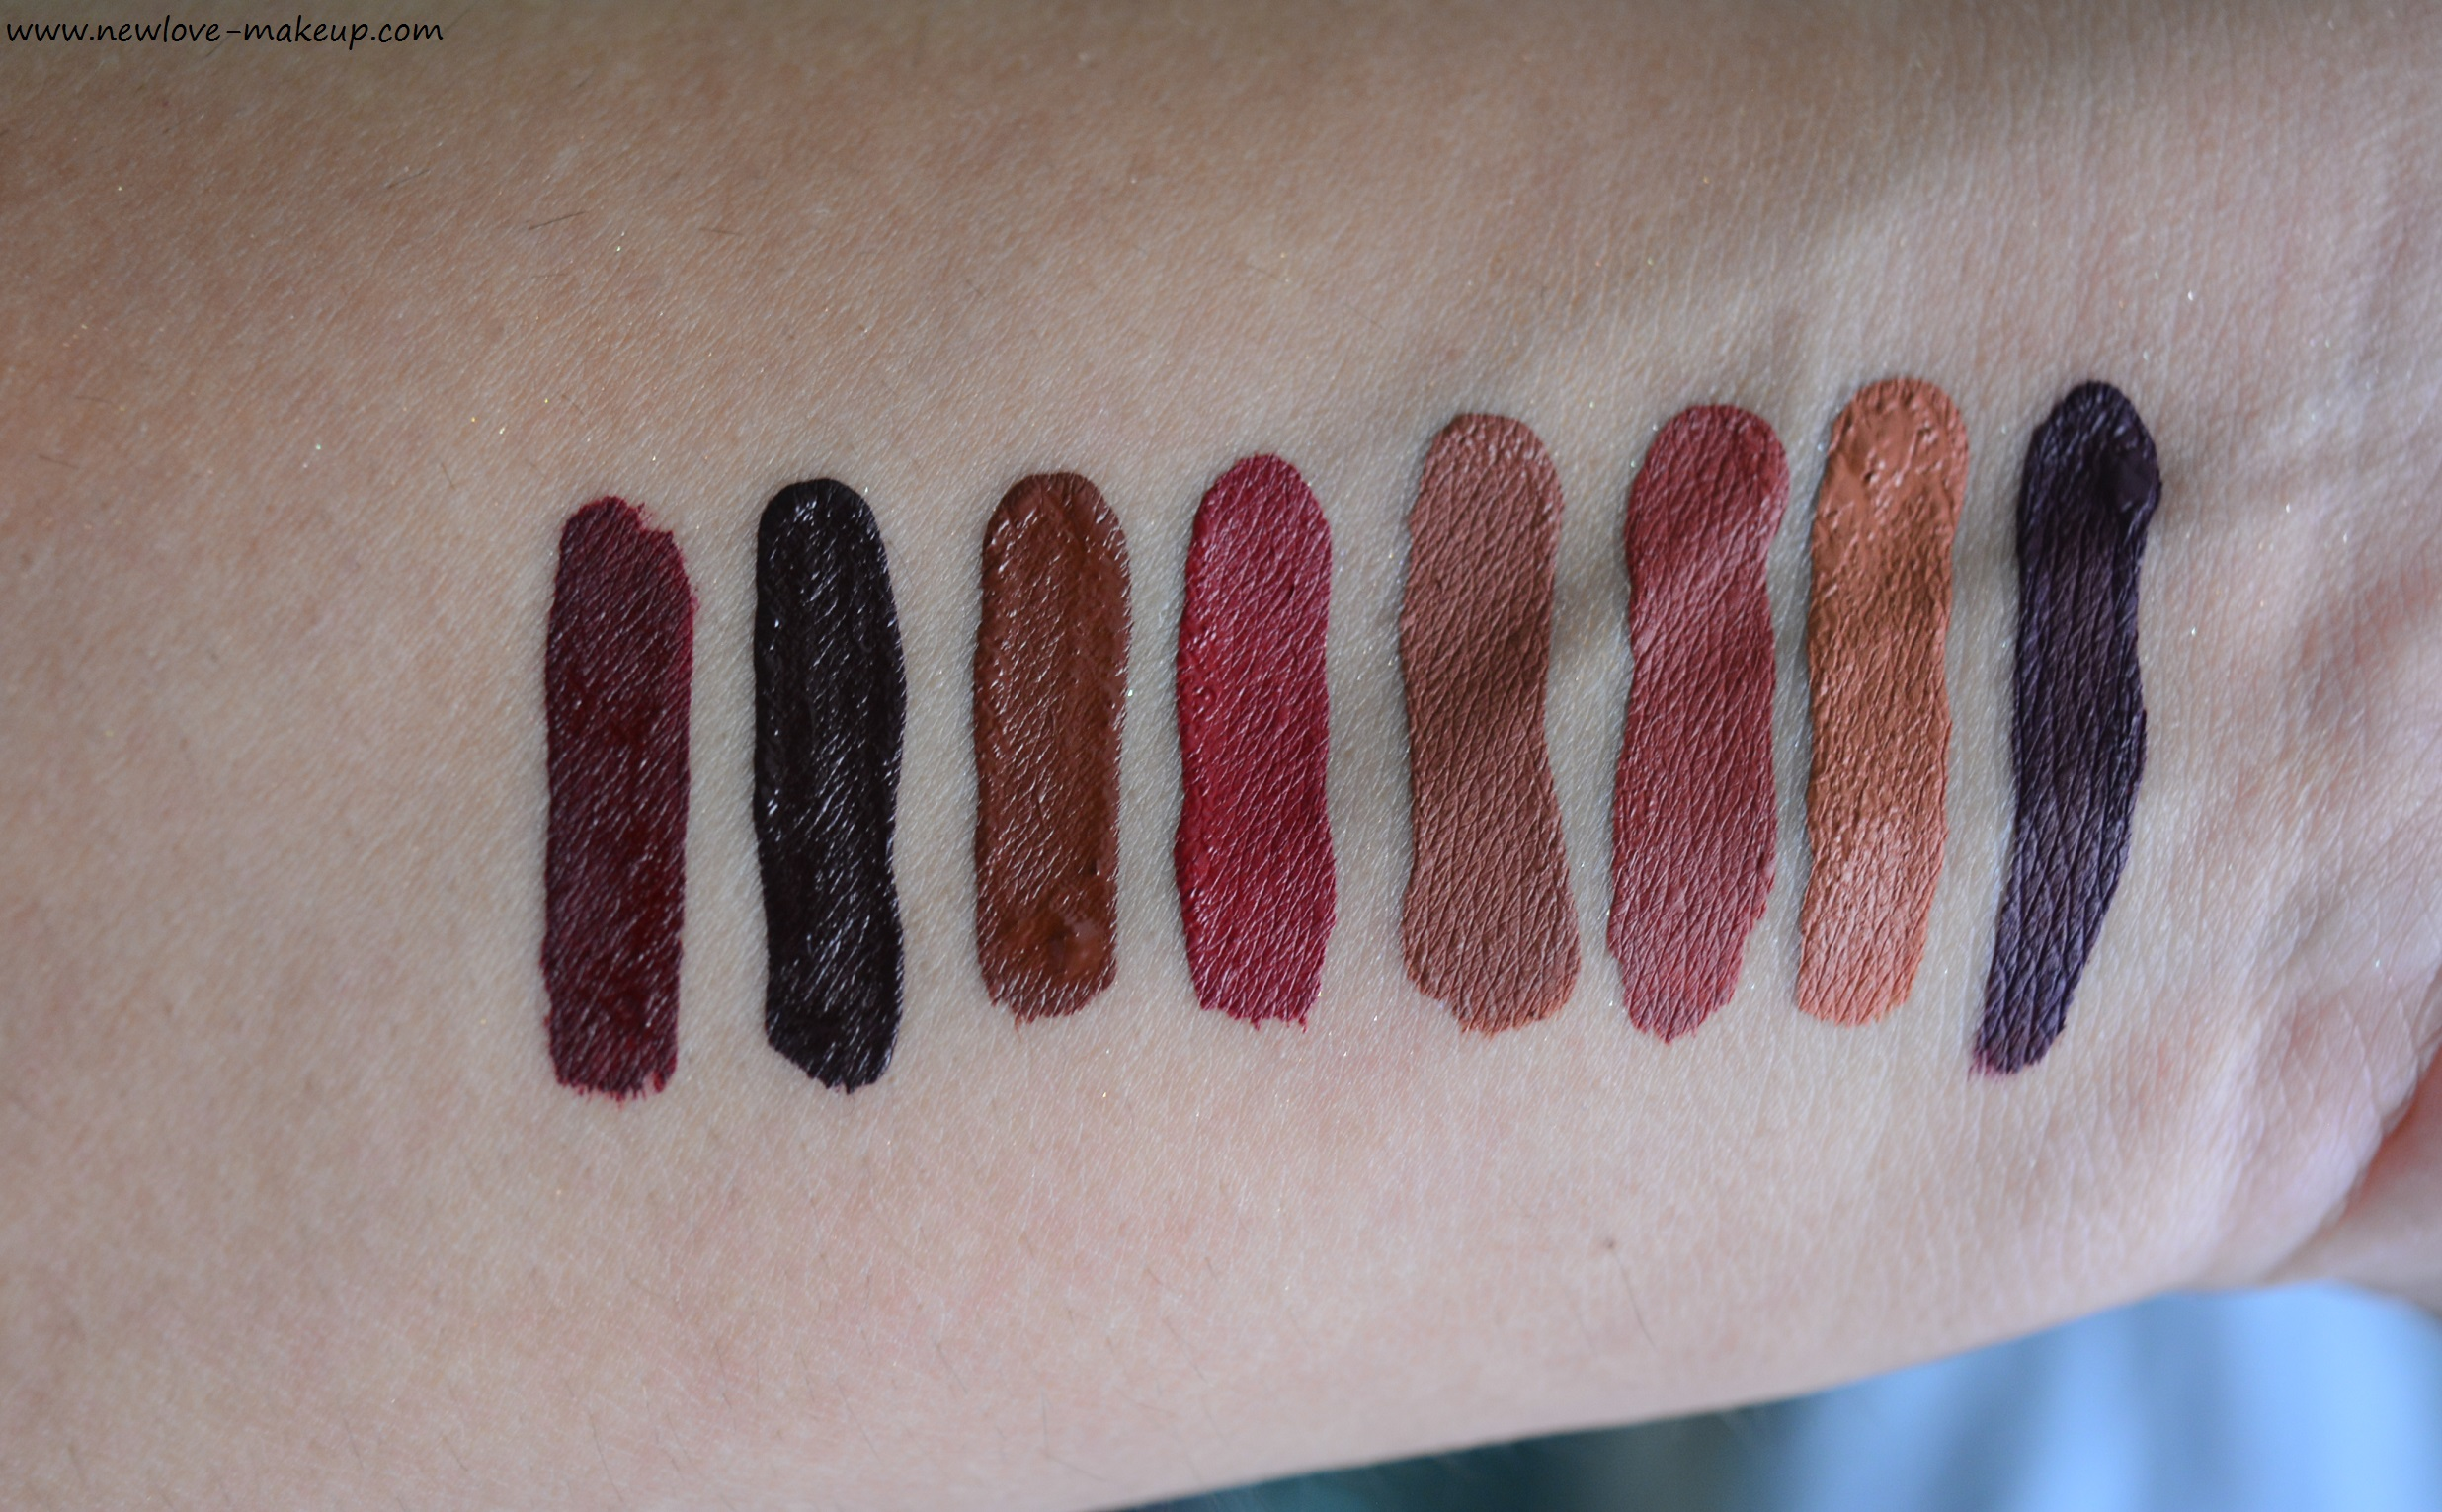 PAC Retro Matte Gloss New Shades Swatches